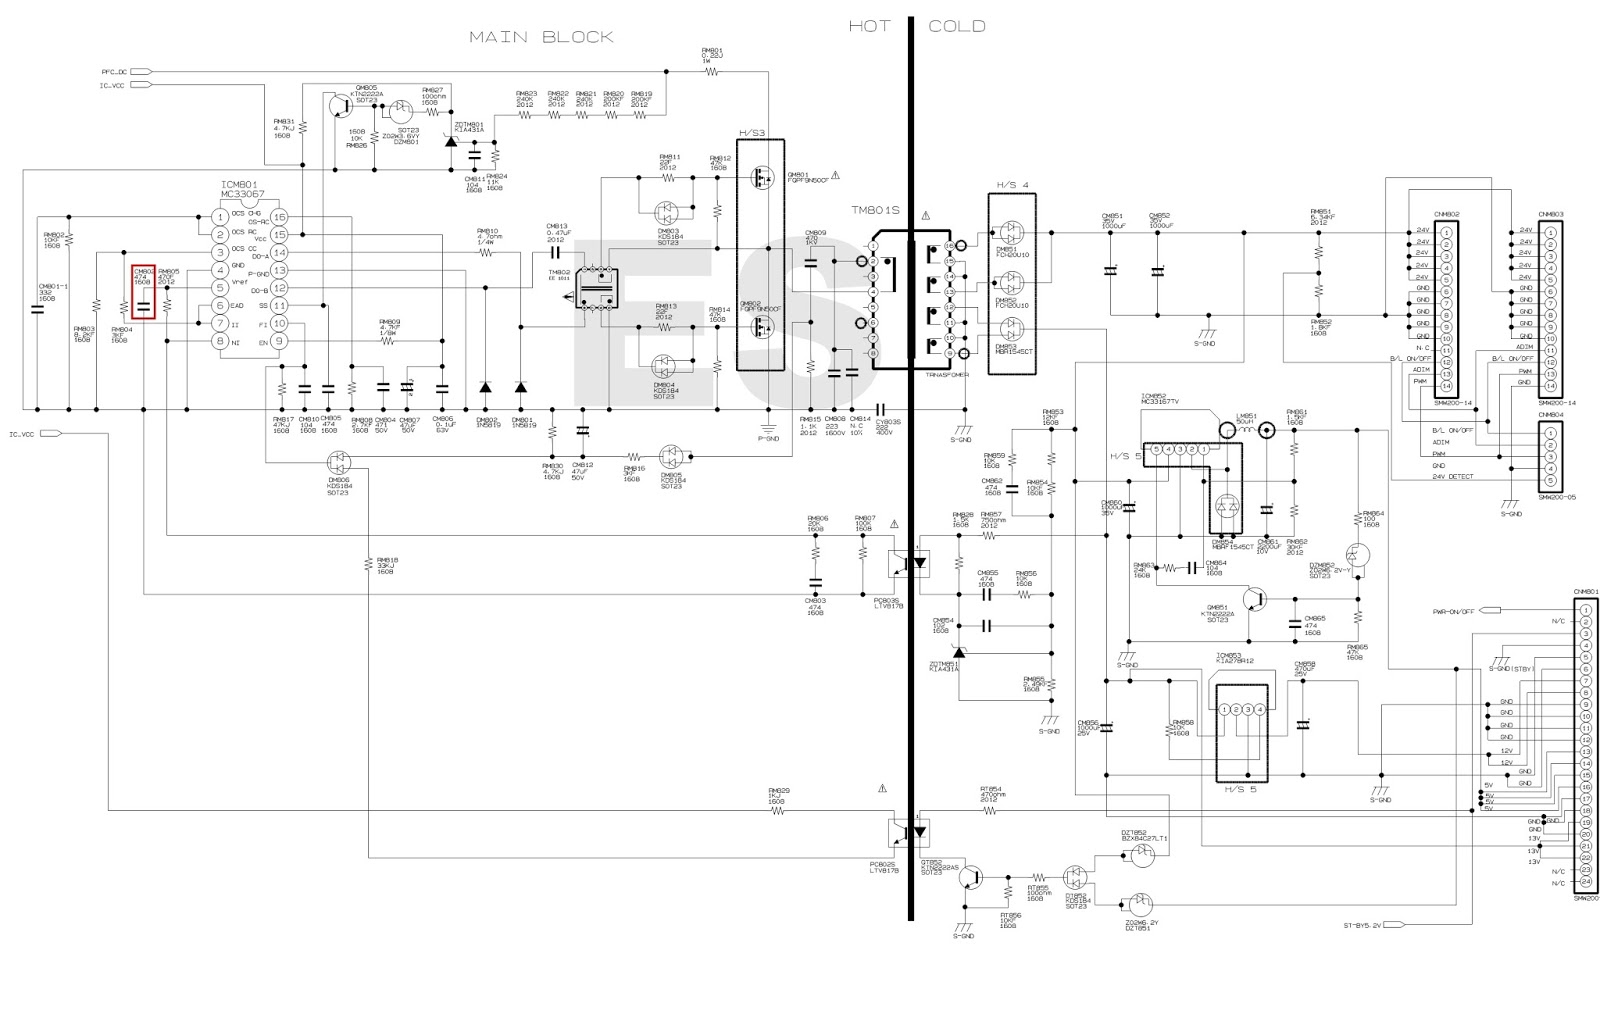 Power Supply Wiring Diagram Pdf Schematic Diagrams Pc Computer Atx Led Tv Schematics Insignia